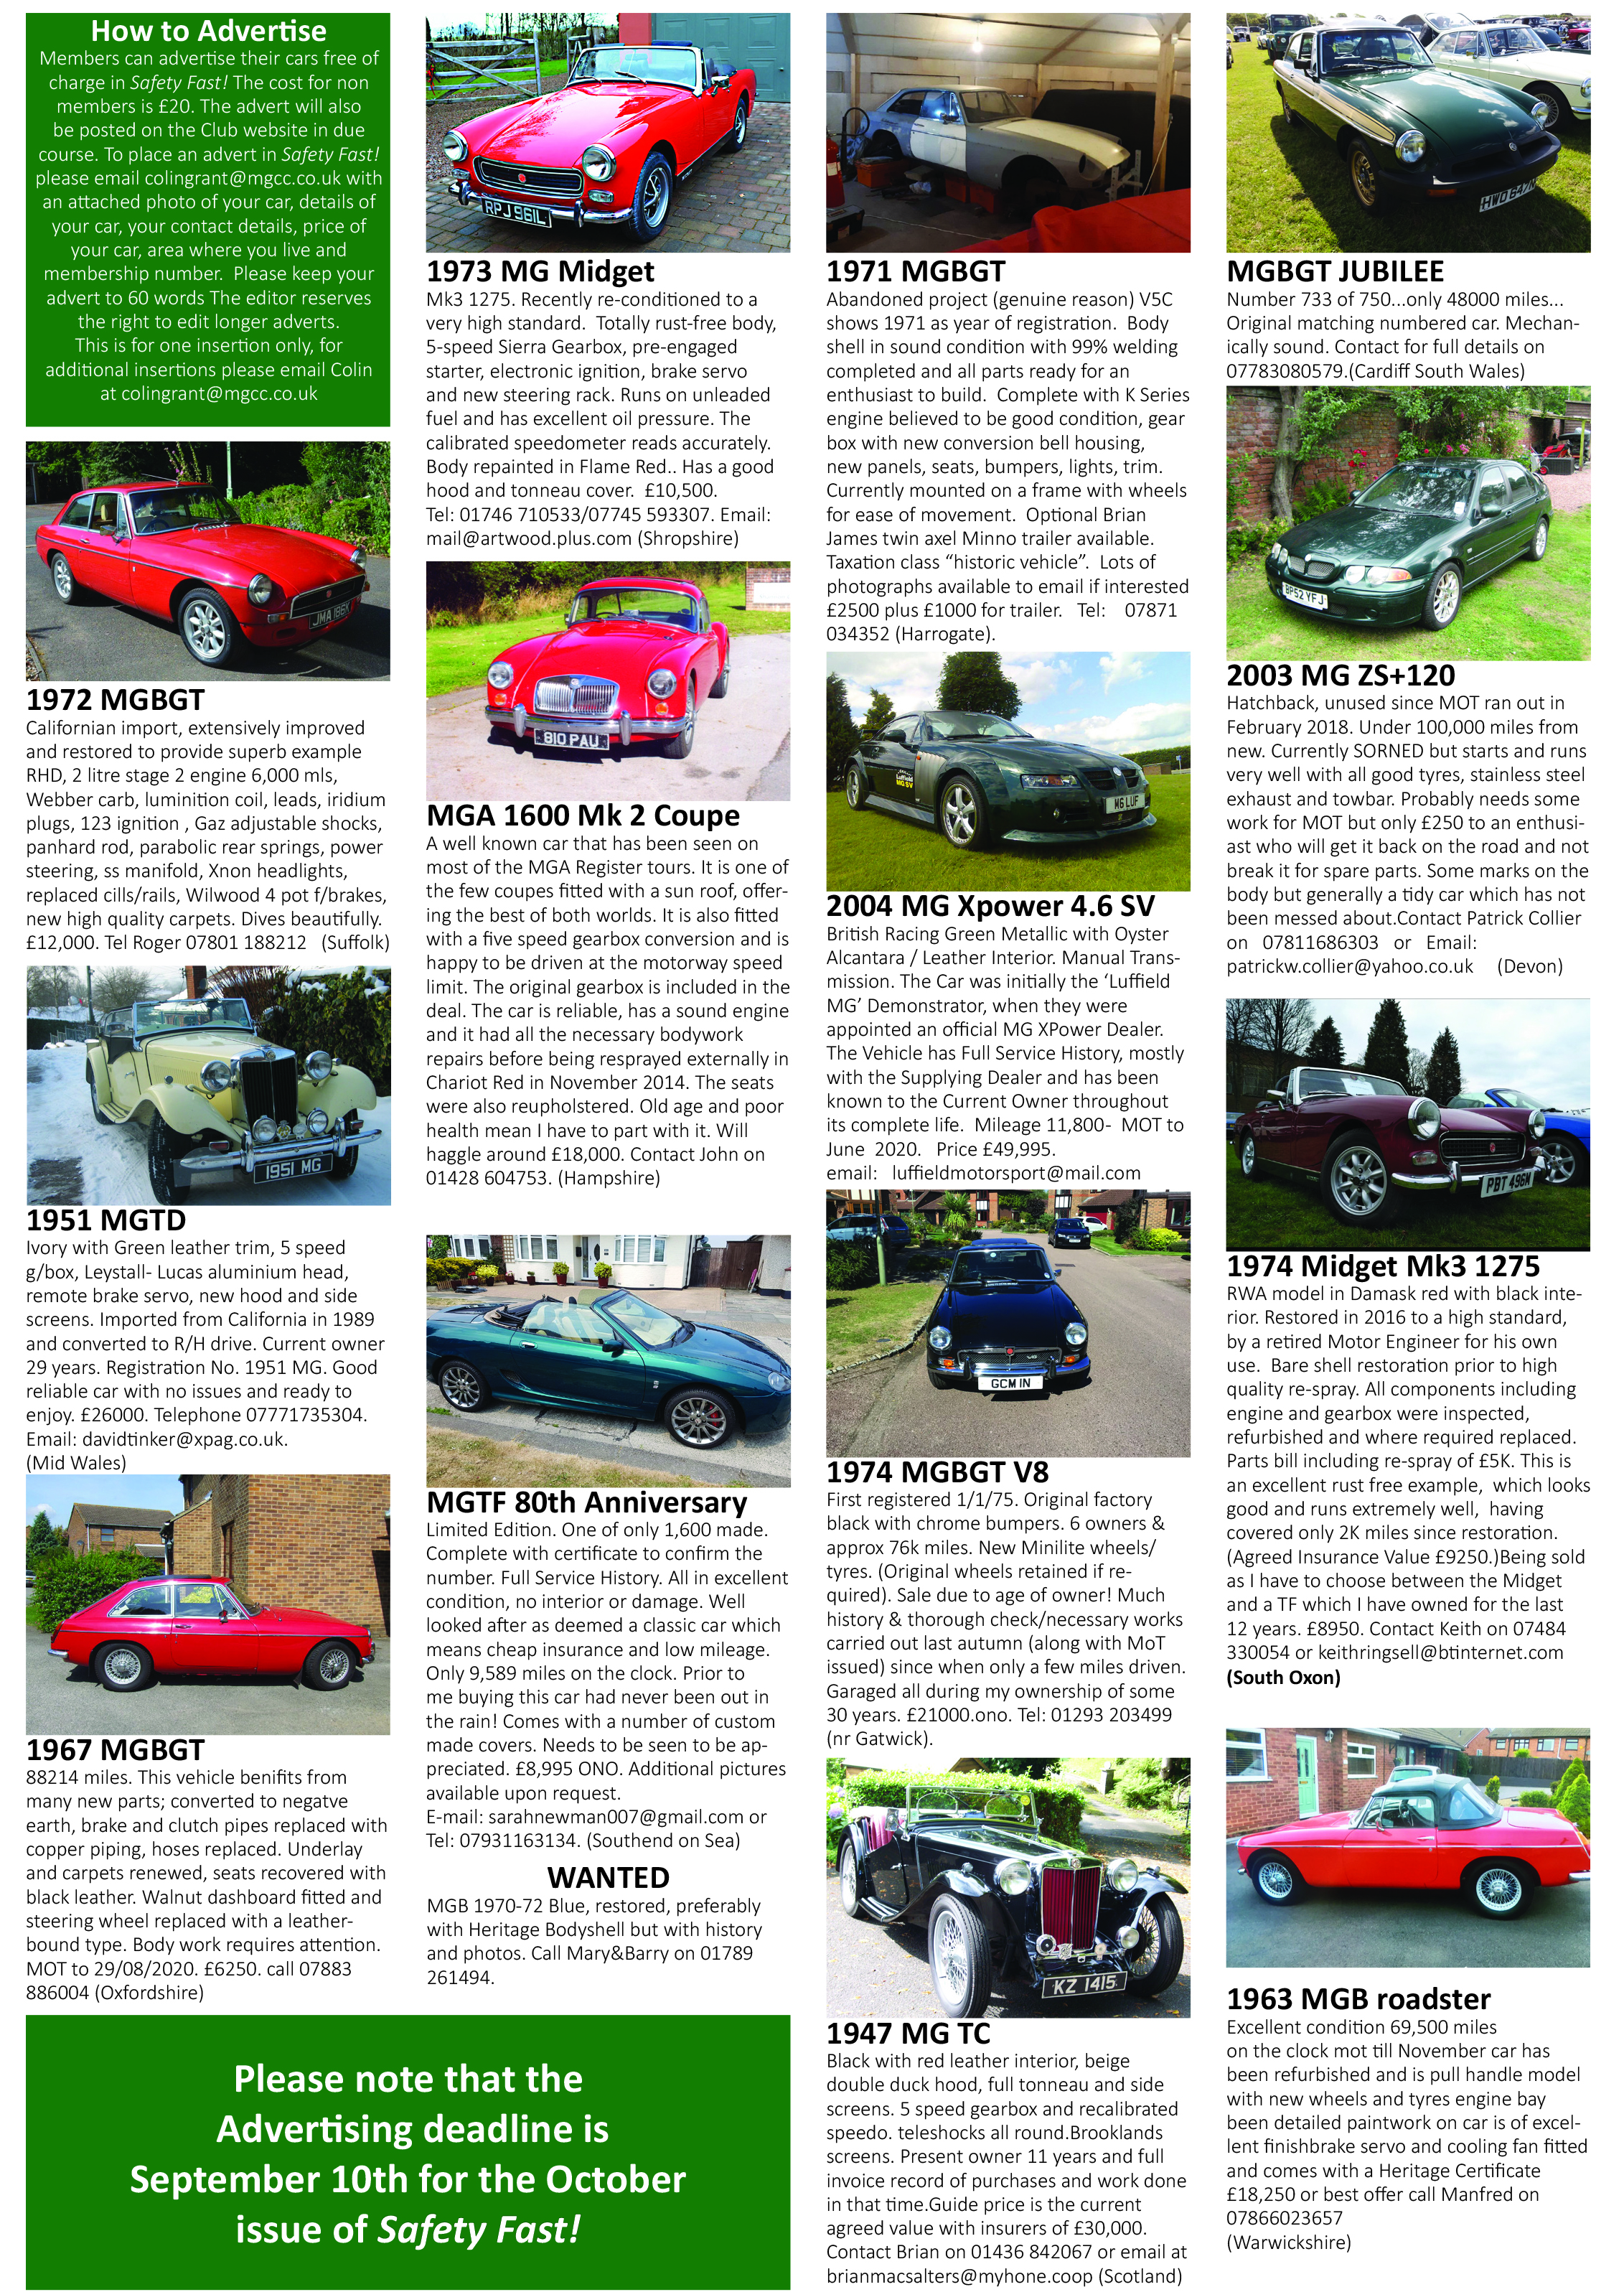 5 Miles Cars For Sale >> Cars For Sale Mg Car Club